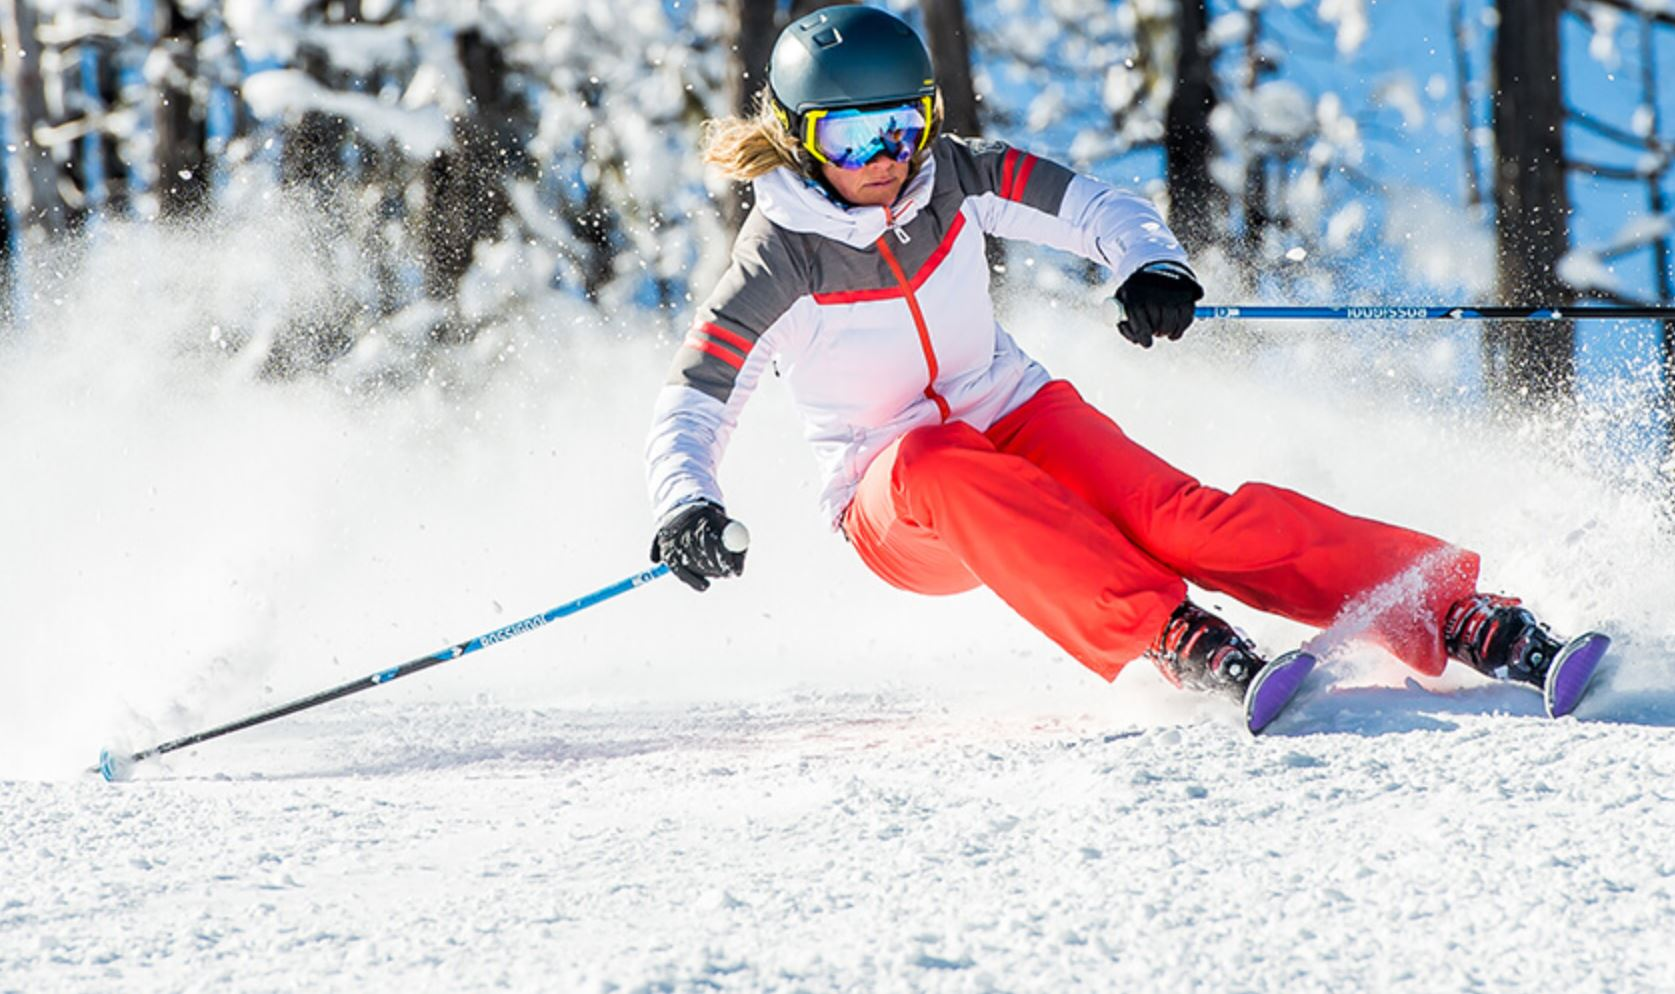 All inclusive ski and snowboard rental packages.